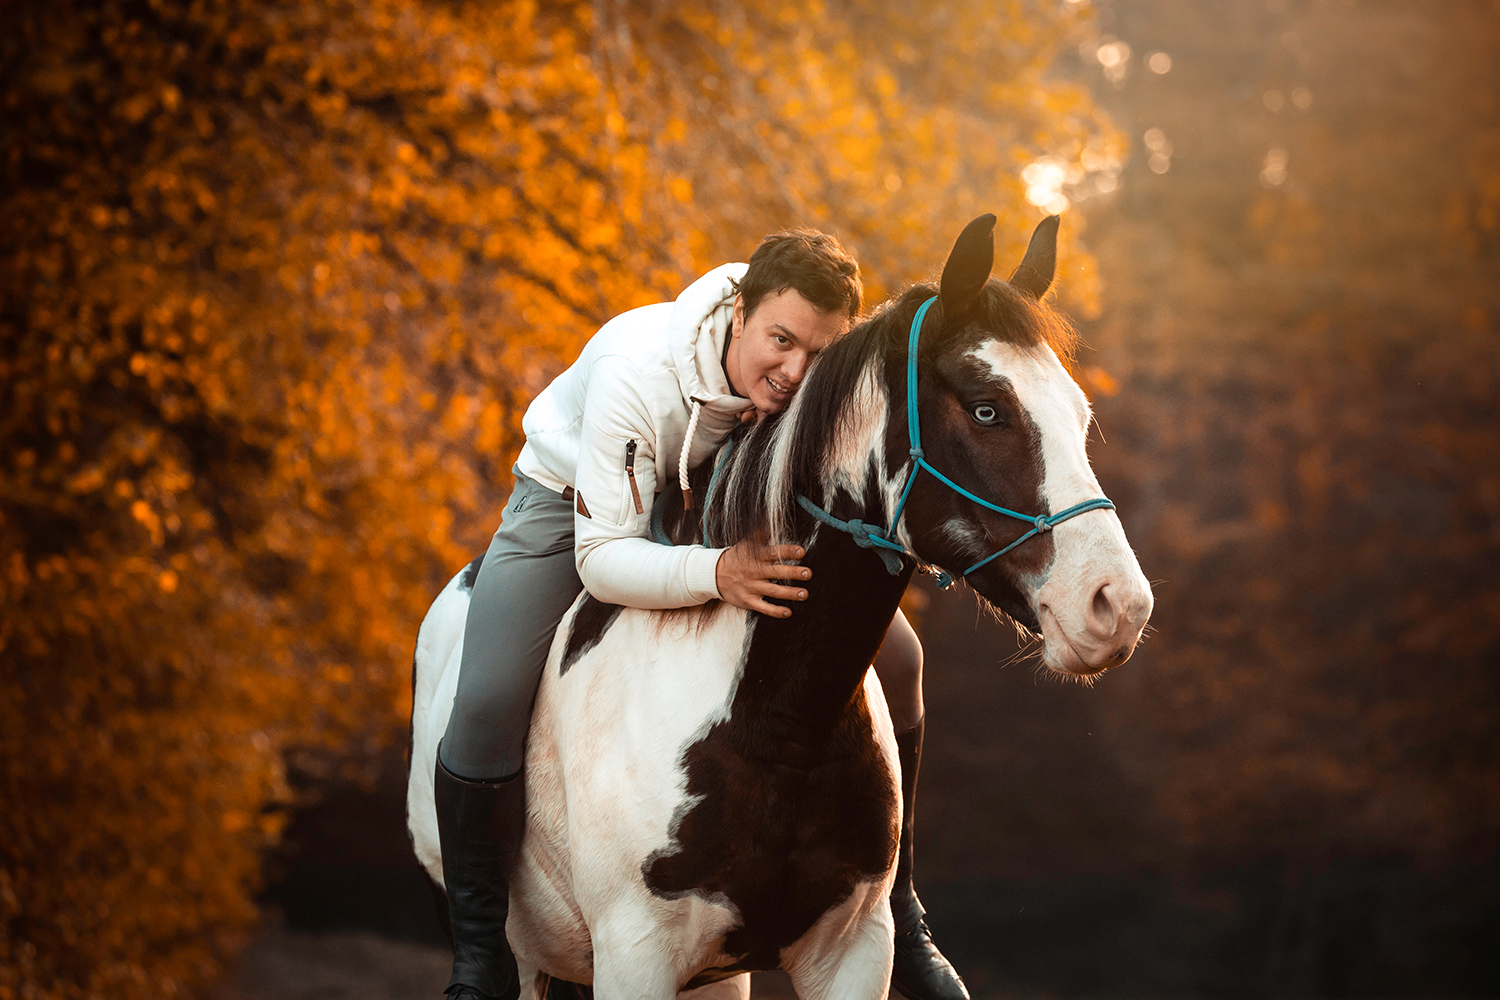 IMG_8978-sophie-narses-photographe-annecy-haute-savoie-book-shooting-portrait-geneve-suisse-famille-animaux-tirages-photo-modele-rhone-alpes-france-animaux-cheval-chien-grossesse-enfant-famille